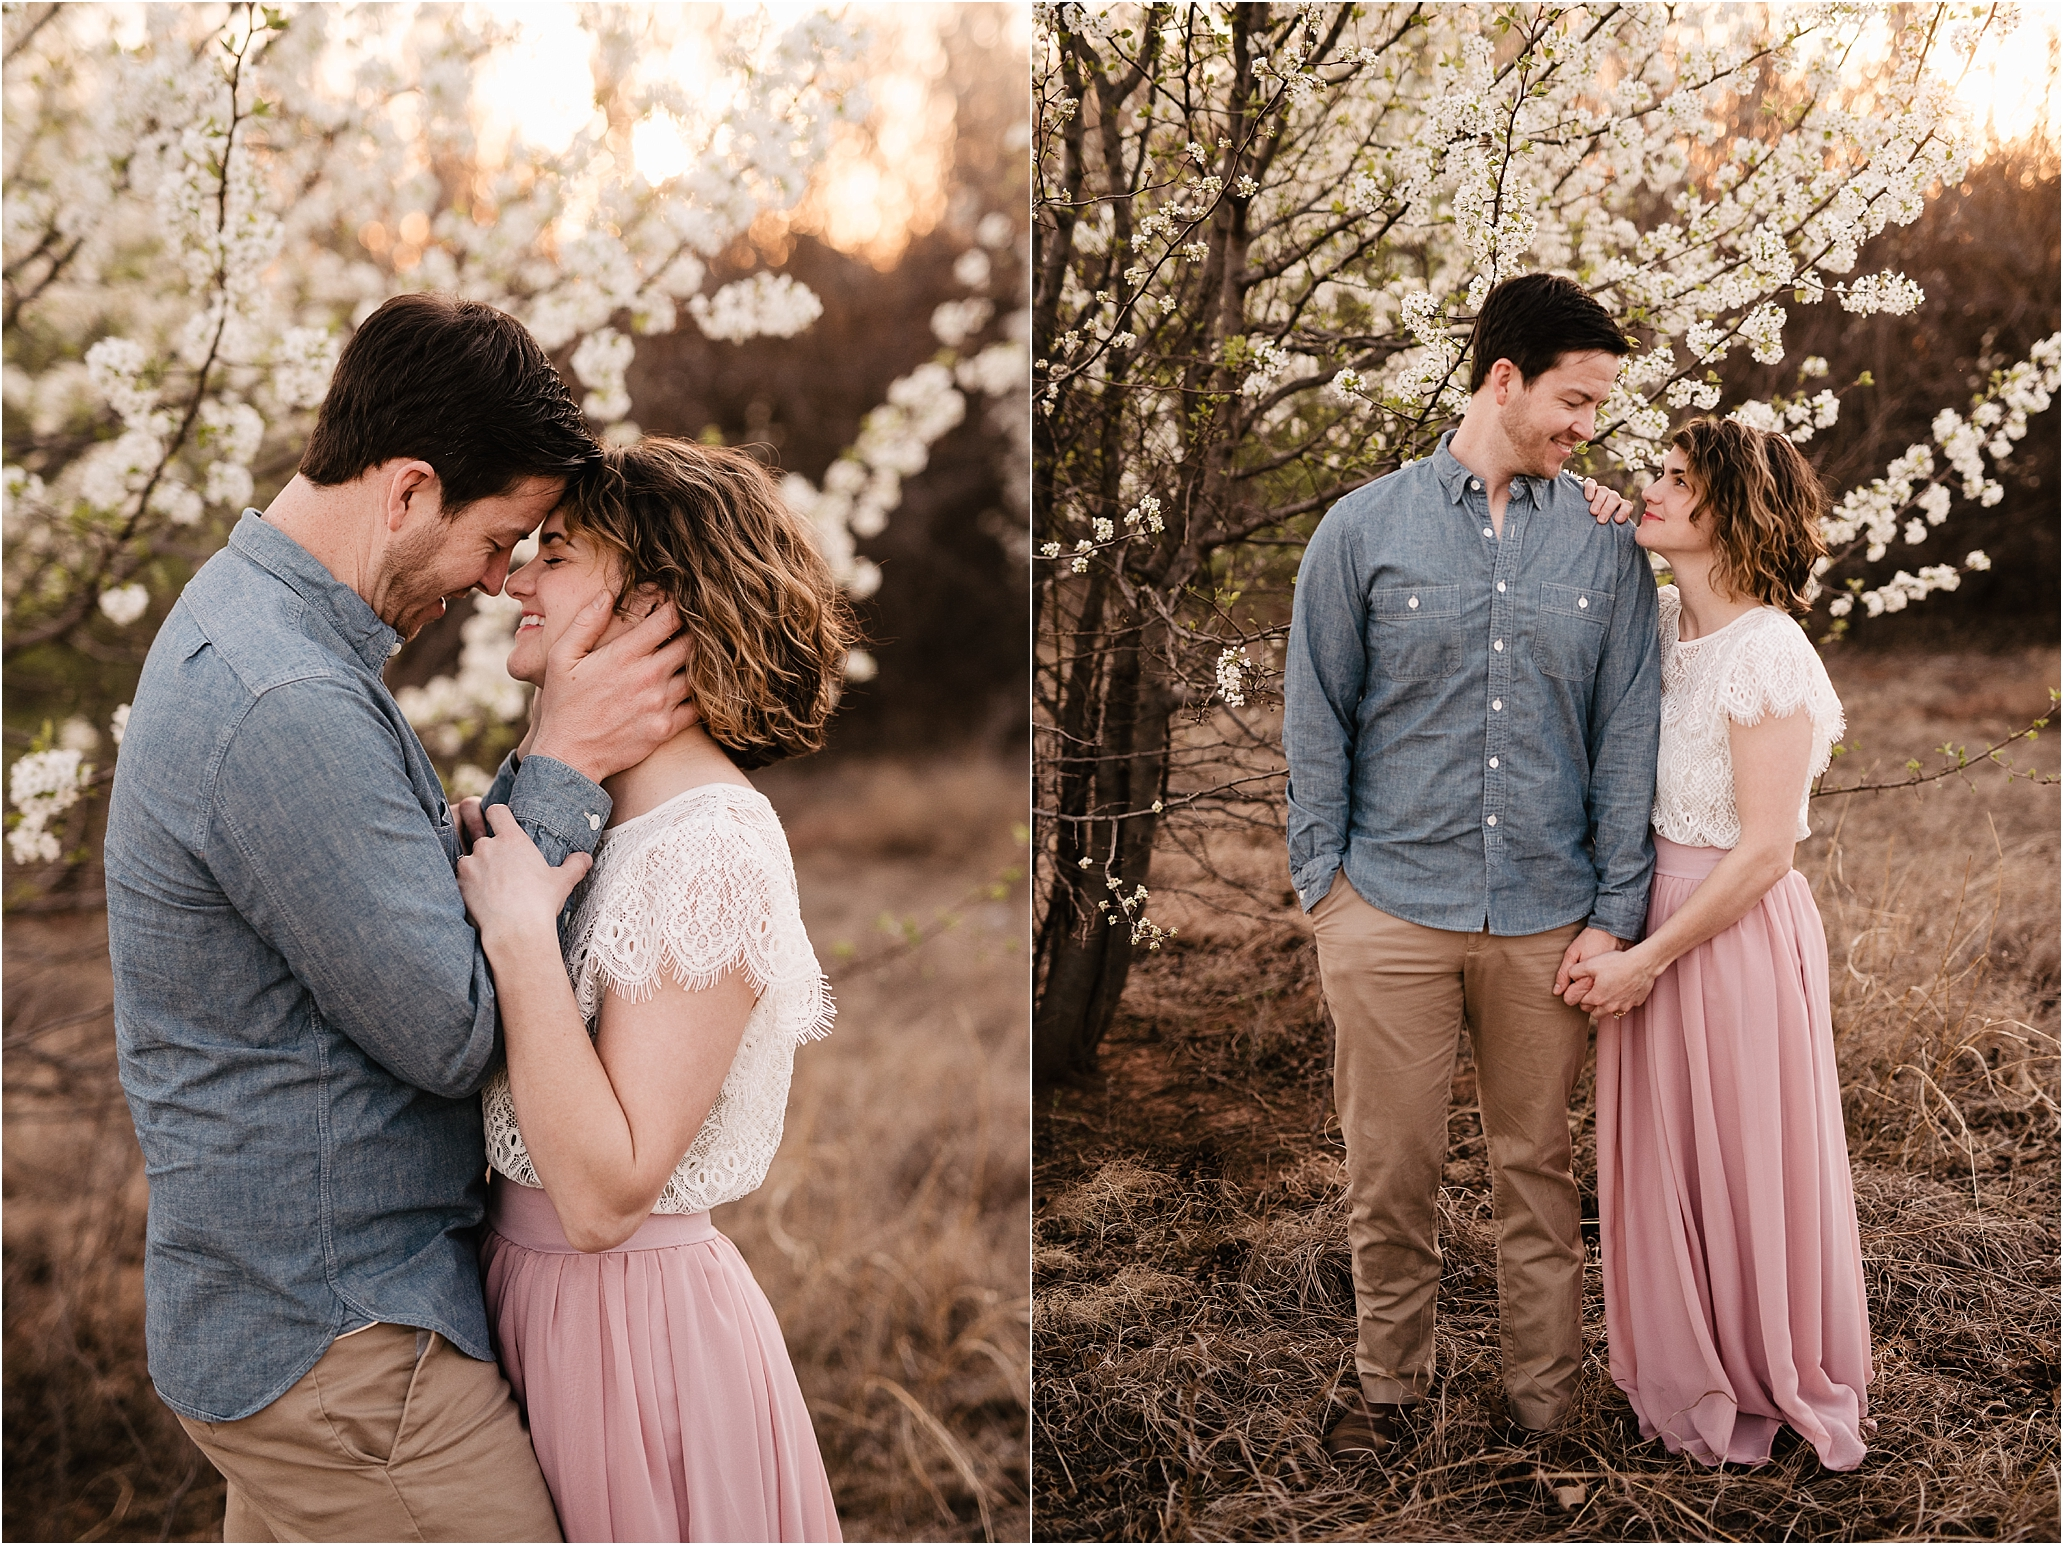 engagement photos session oklahoma wedding photographer outdoors spring edmond okc anniversary what to wear natural flowers